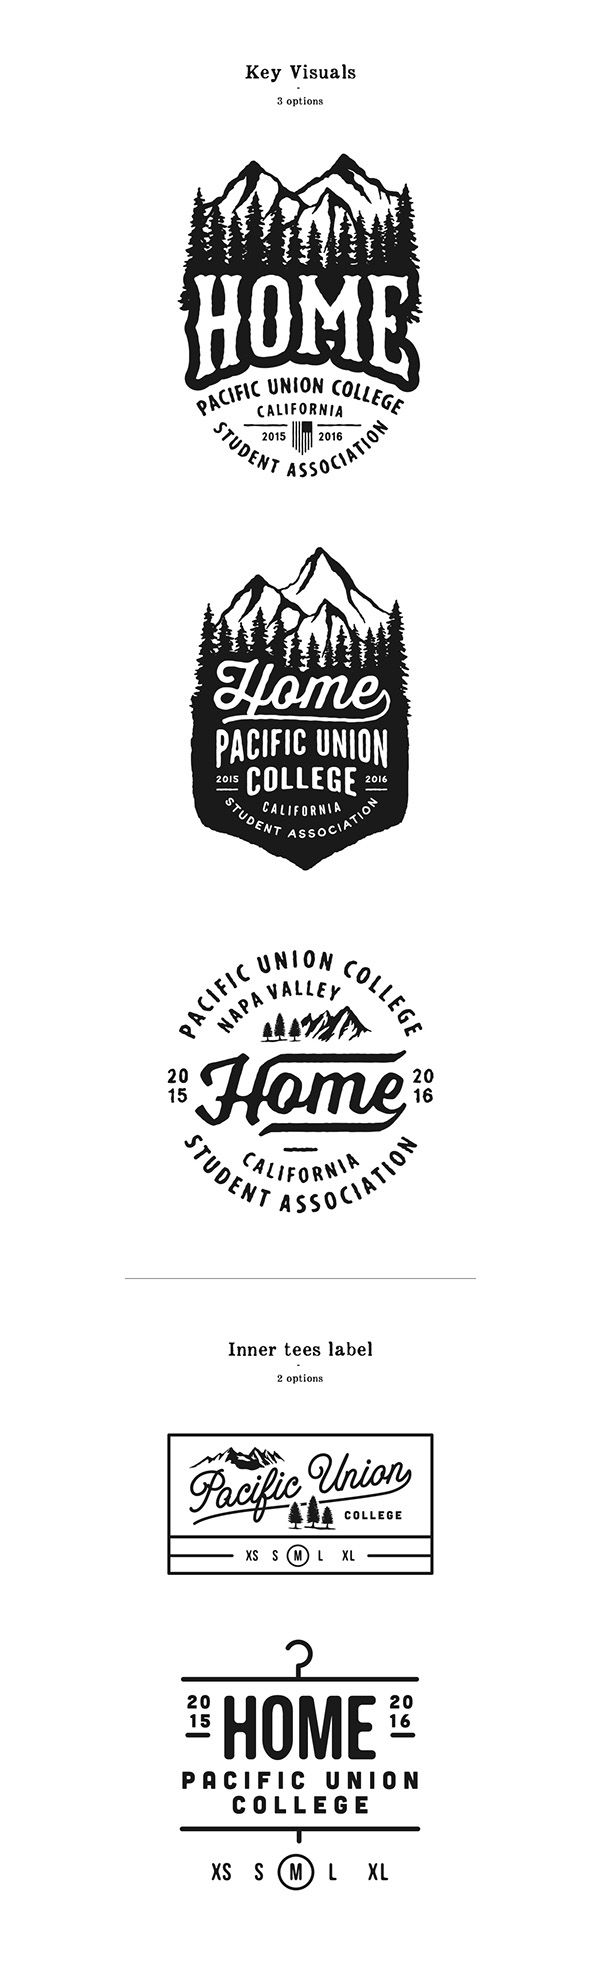 HOME - Pacific Union College,Napa Valley, California. on Typography Served